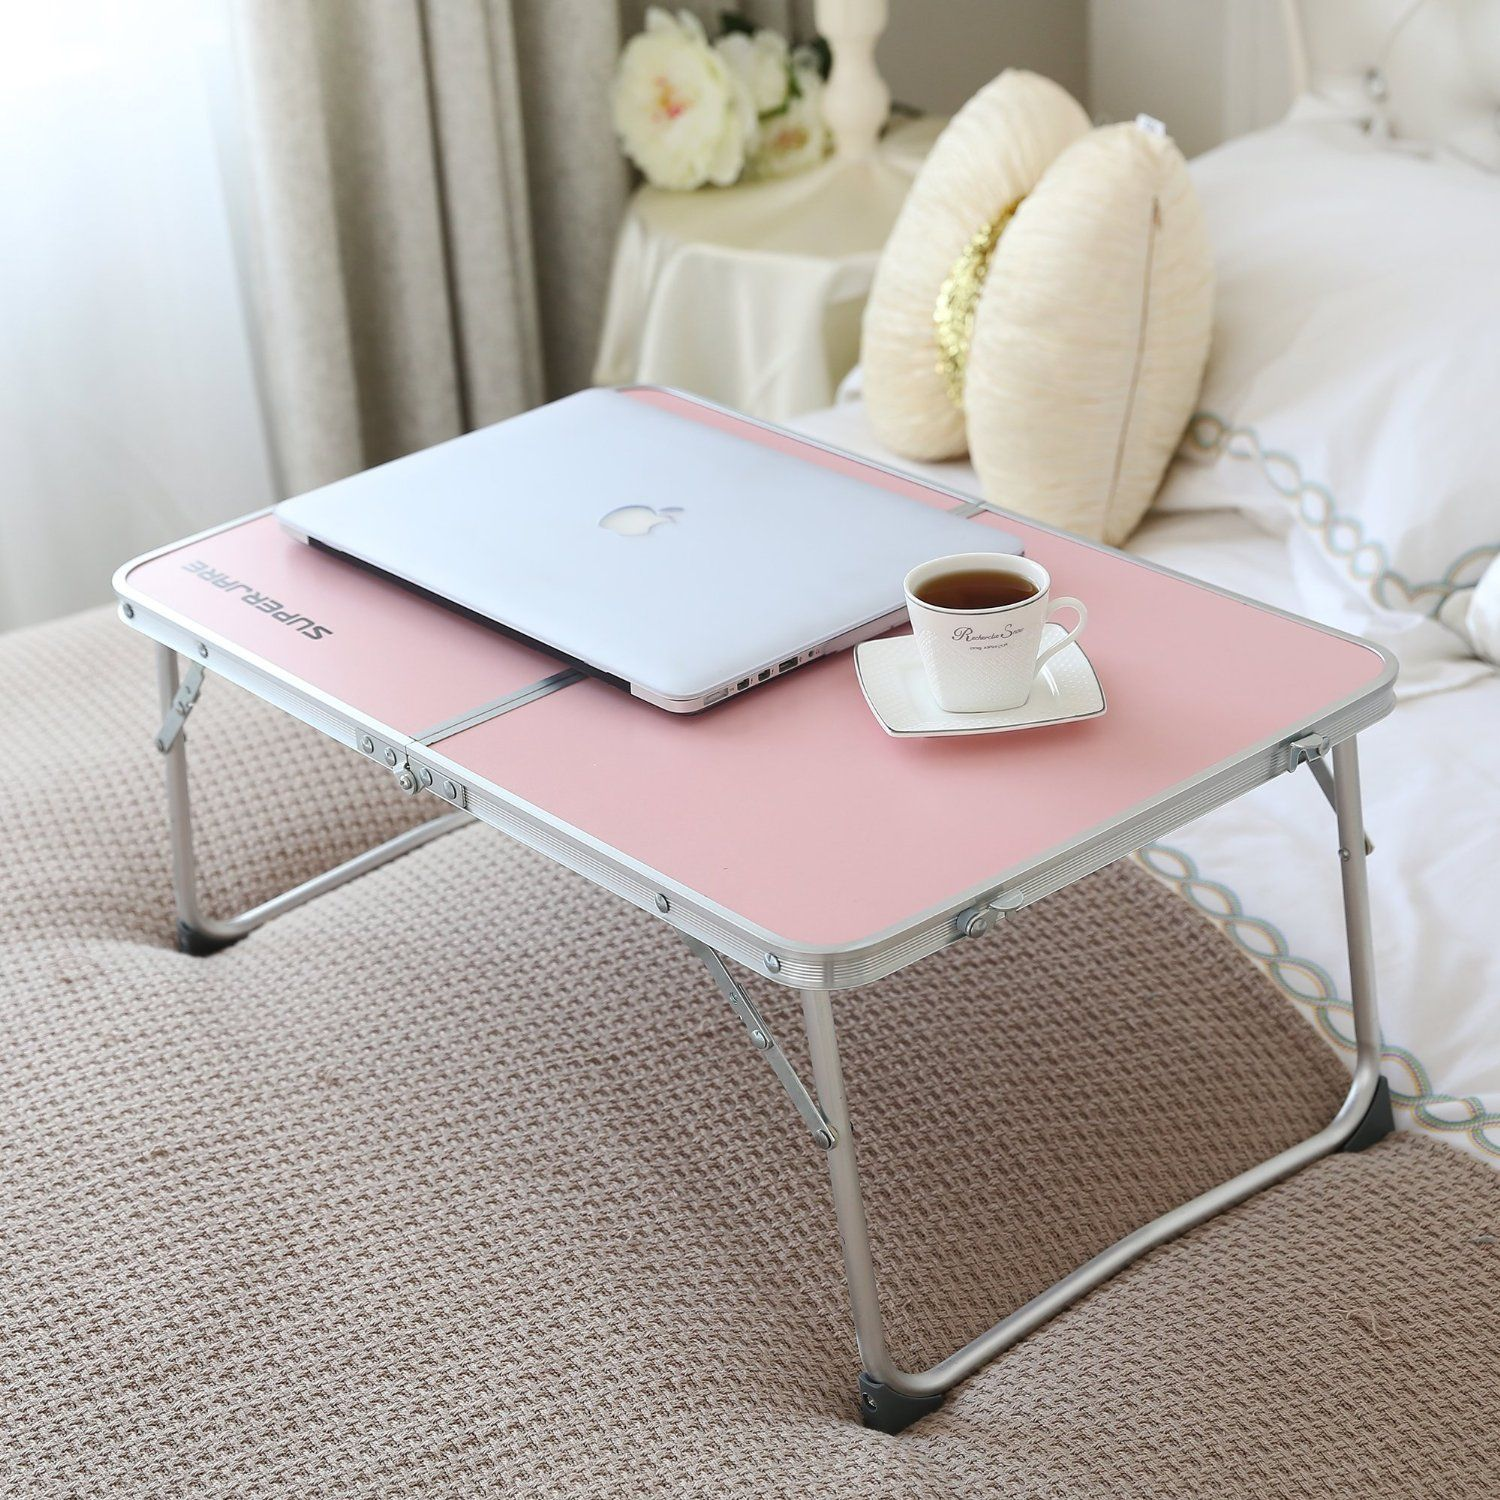 Laptop Tray For Bed Usumovein Superjare Folding Laptop Desk Portable Table